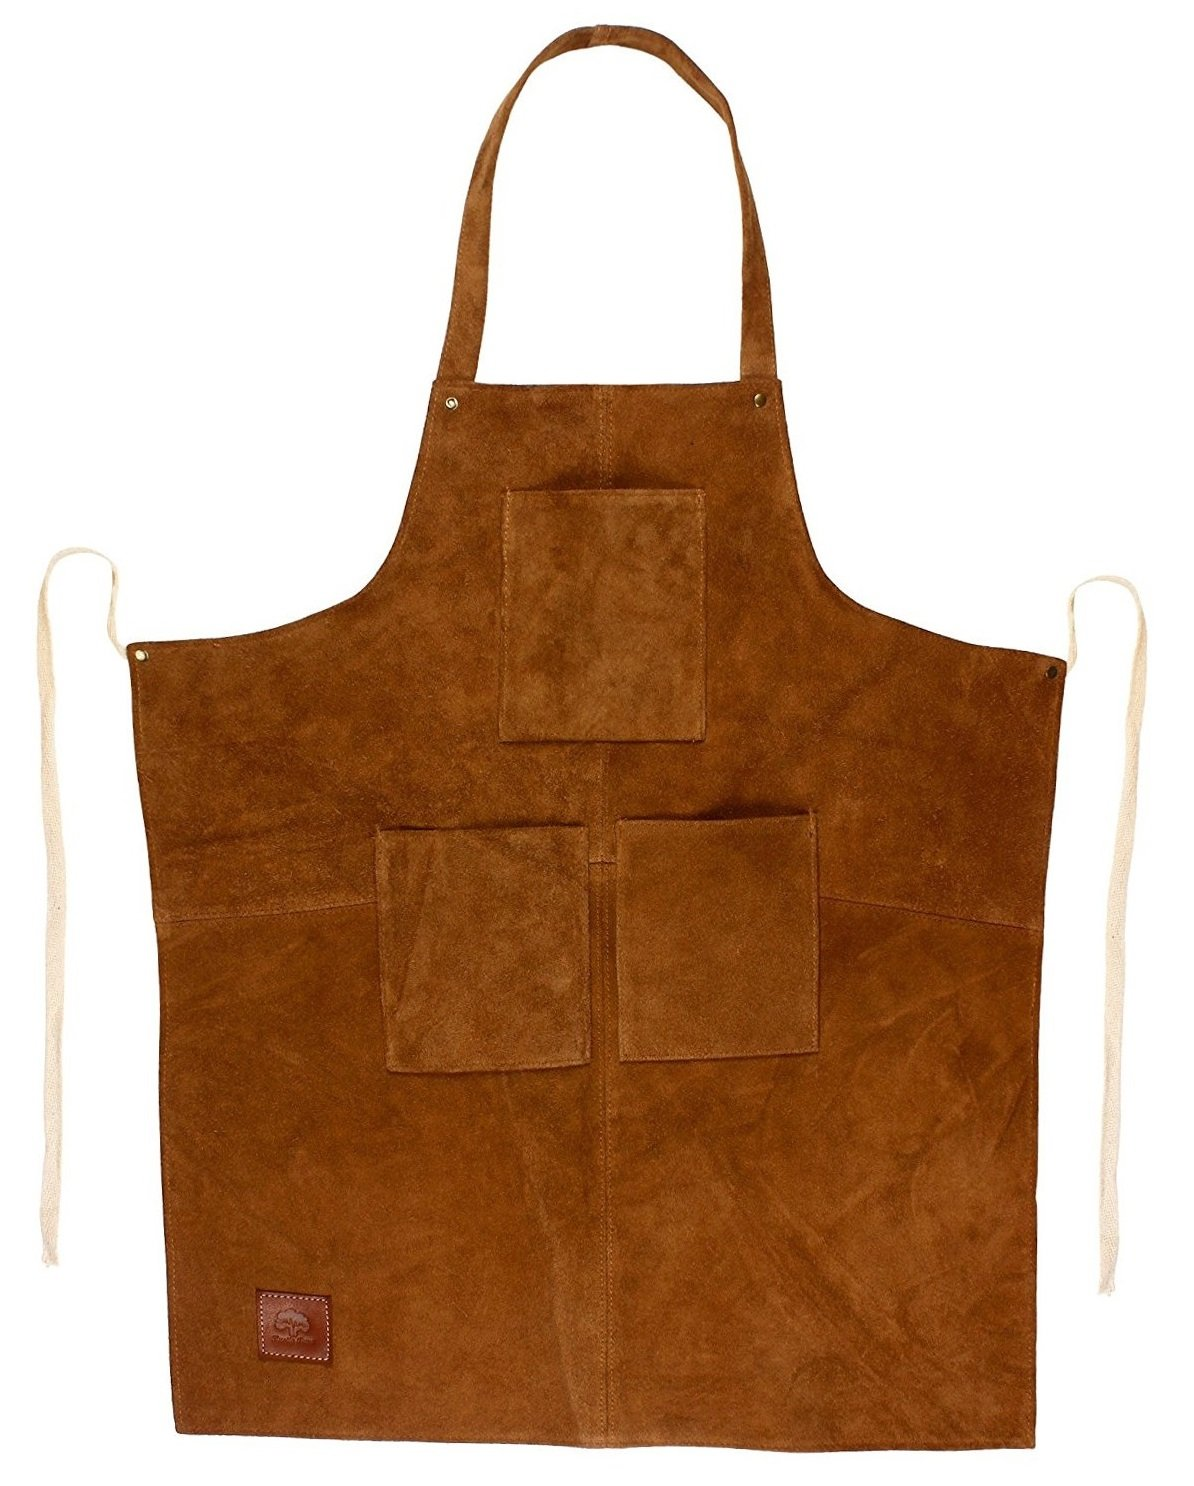 Rustic Town Genuine Leather Grill Work Apron with Tool Pockets ~ Adjustable up to XXL for Men & Women ~ Gift Ideas for Him Her (Tan)  Price: £34.99